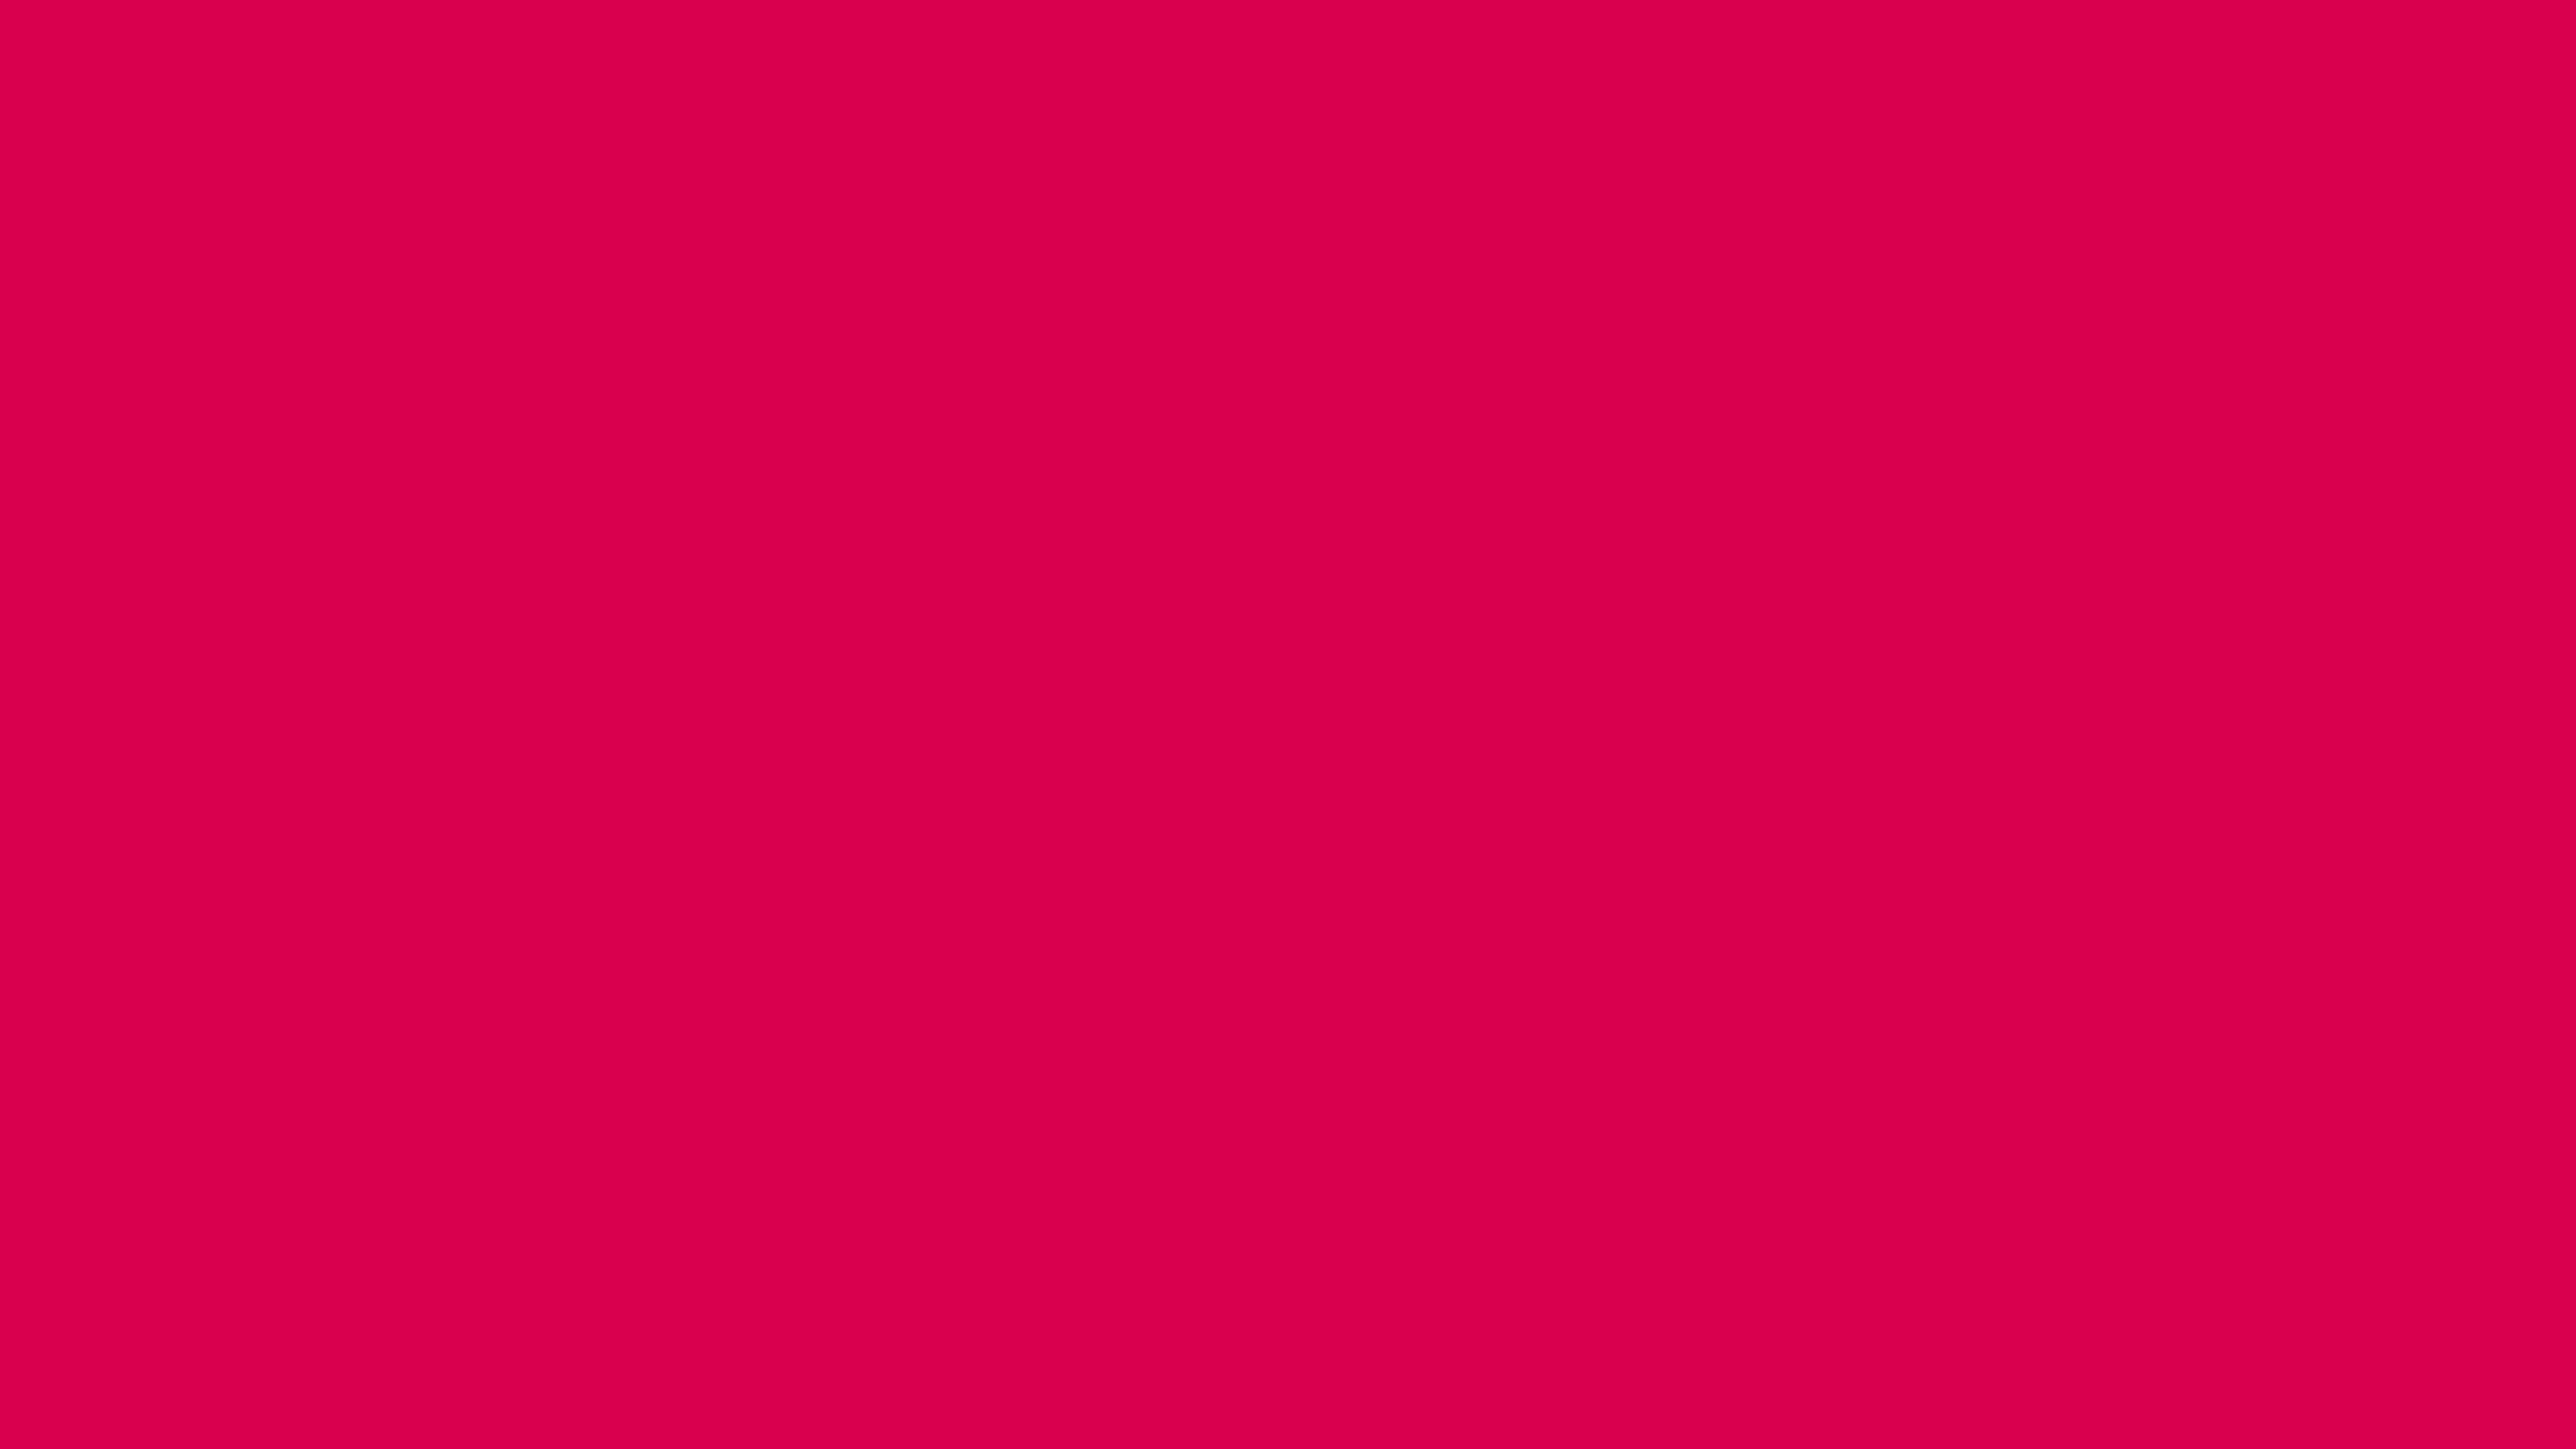 5120x2880 UA Red Solid Color Background